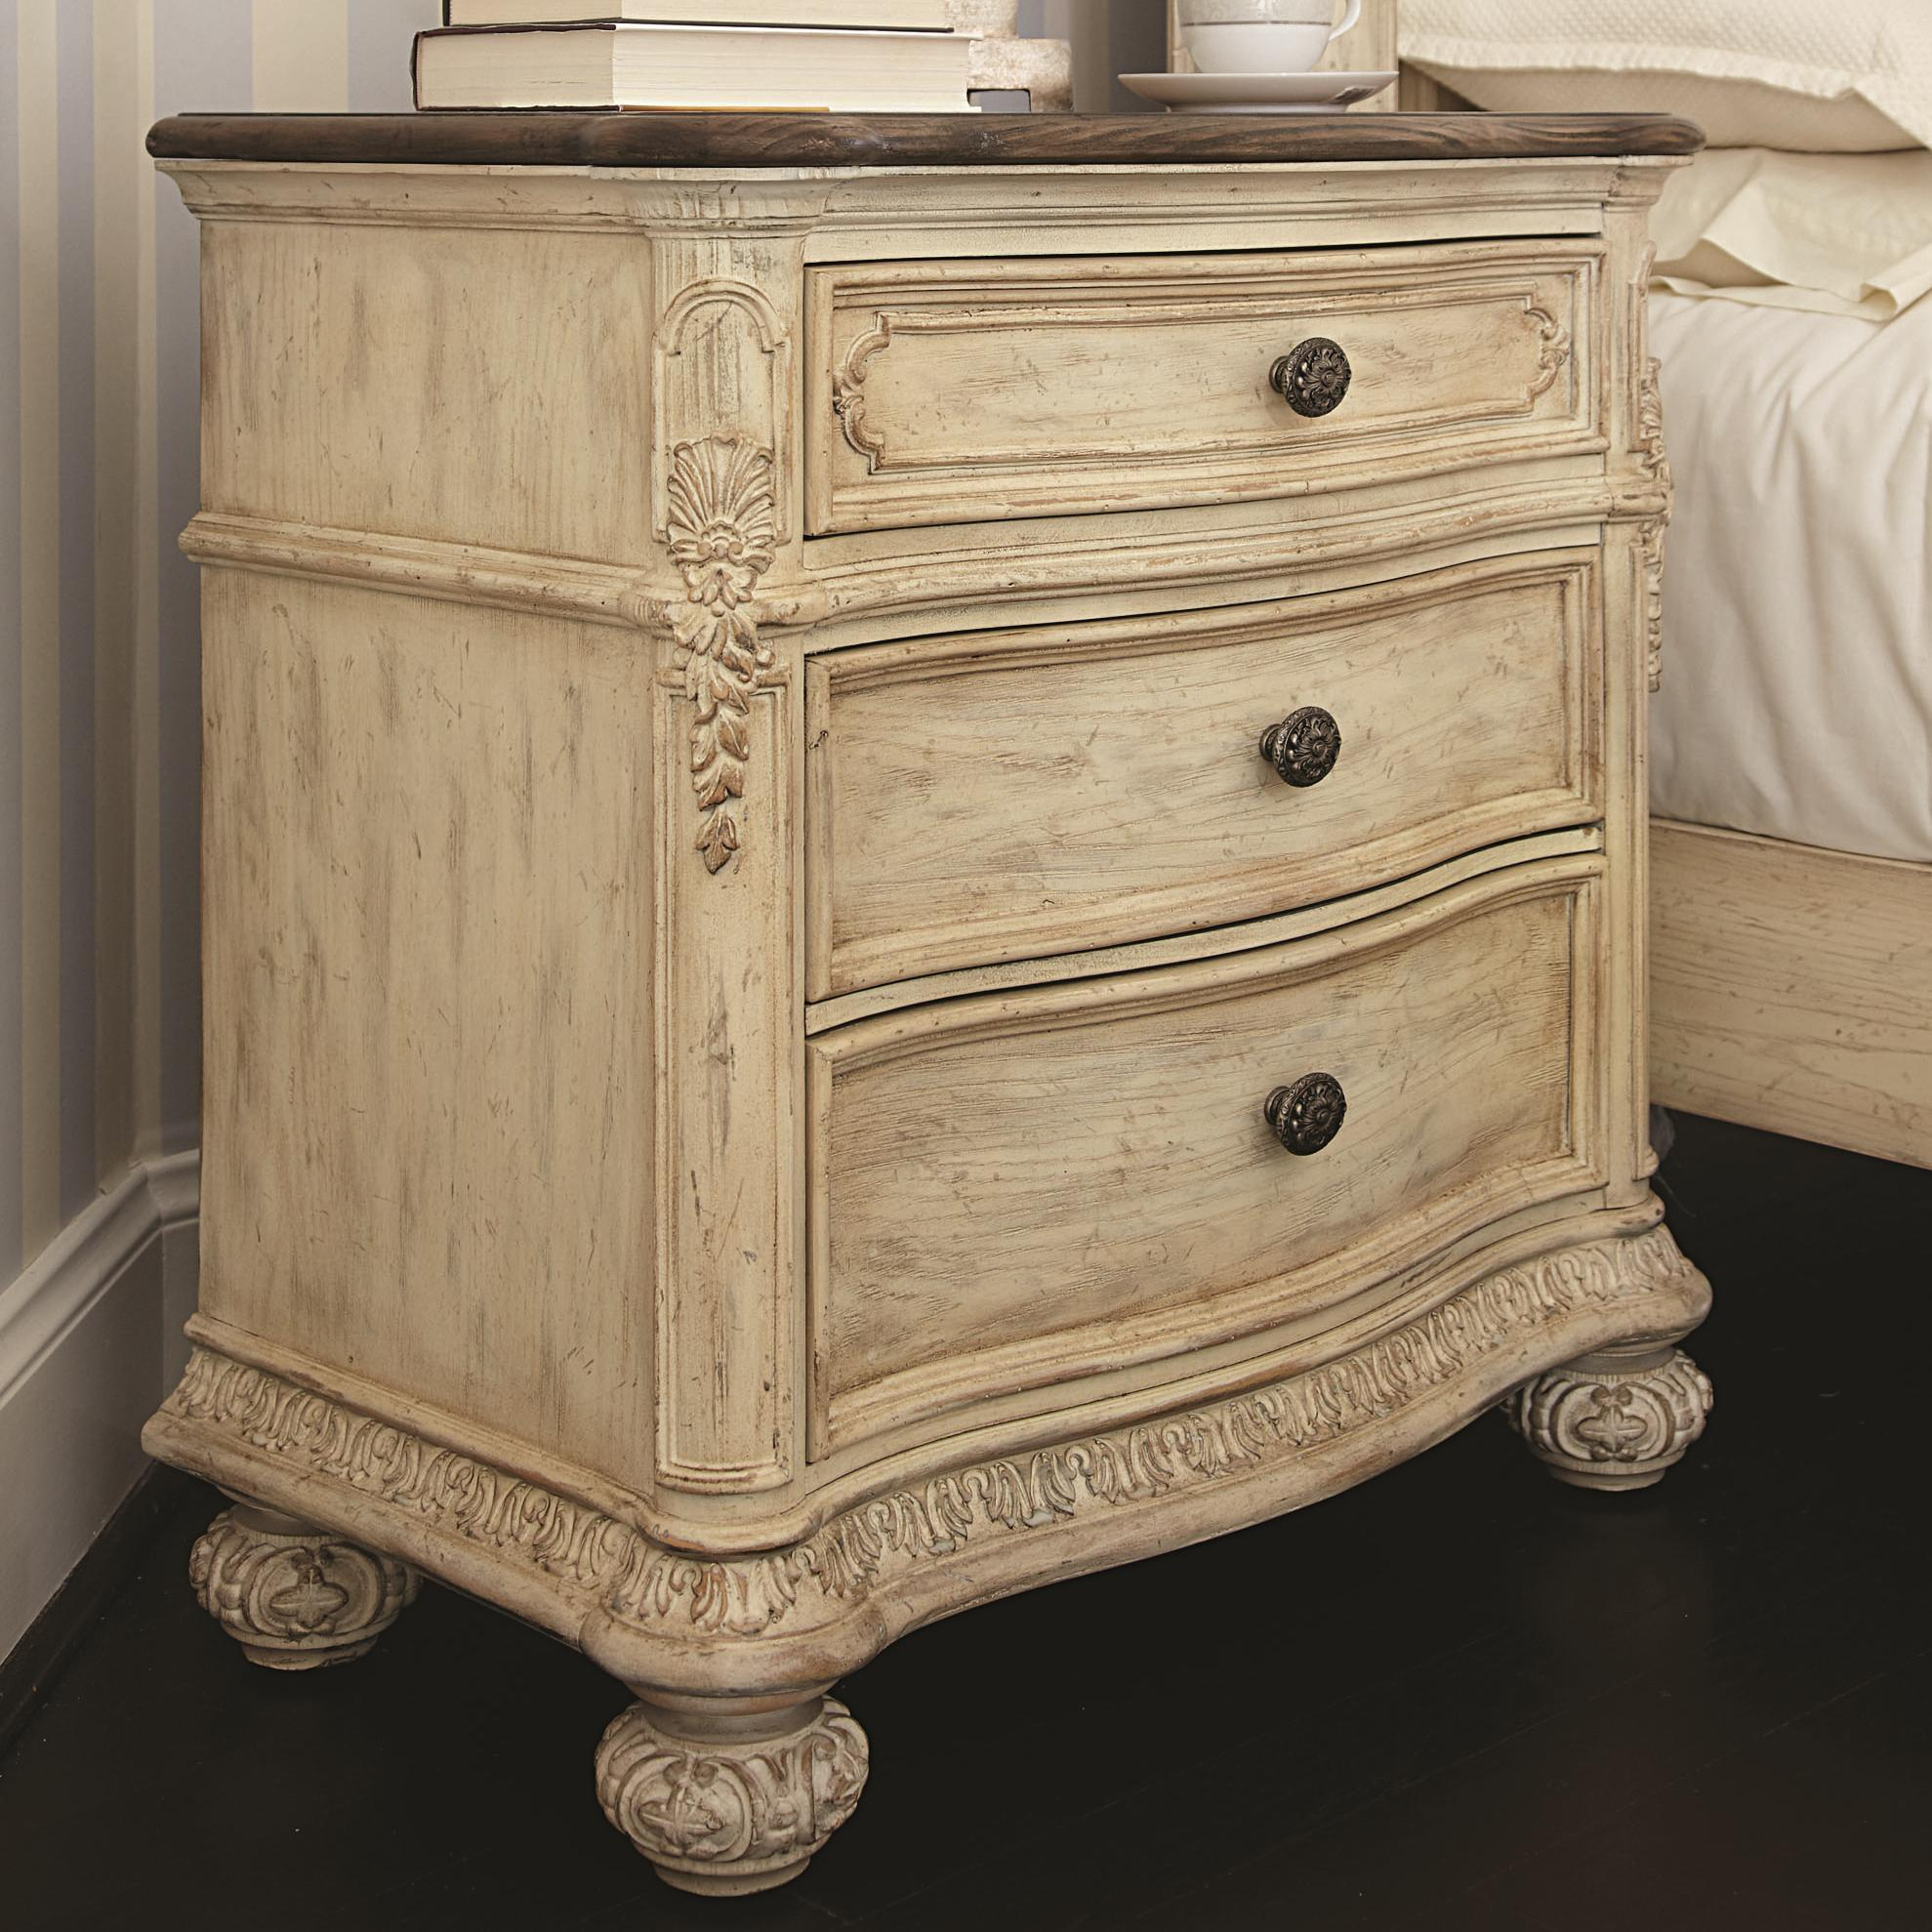 3 Drawer Nightstand With Acanthus Leaf Detailing. By American Drew